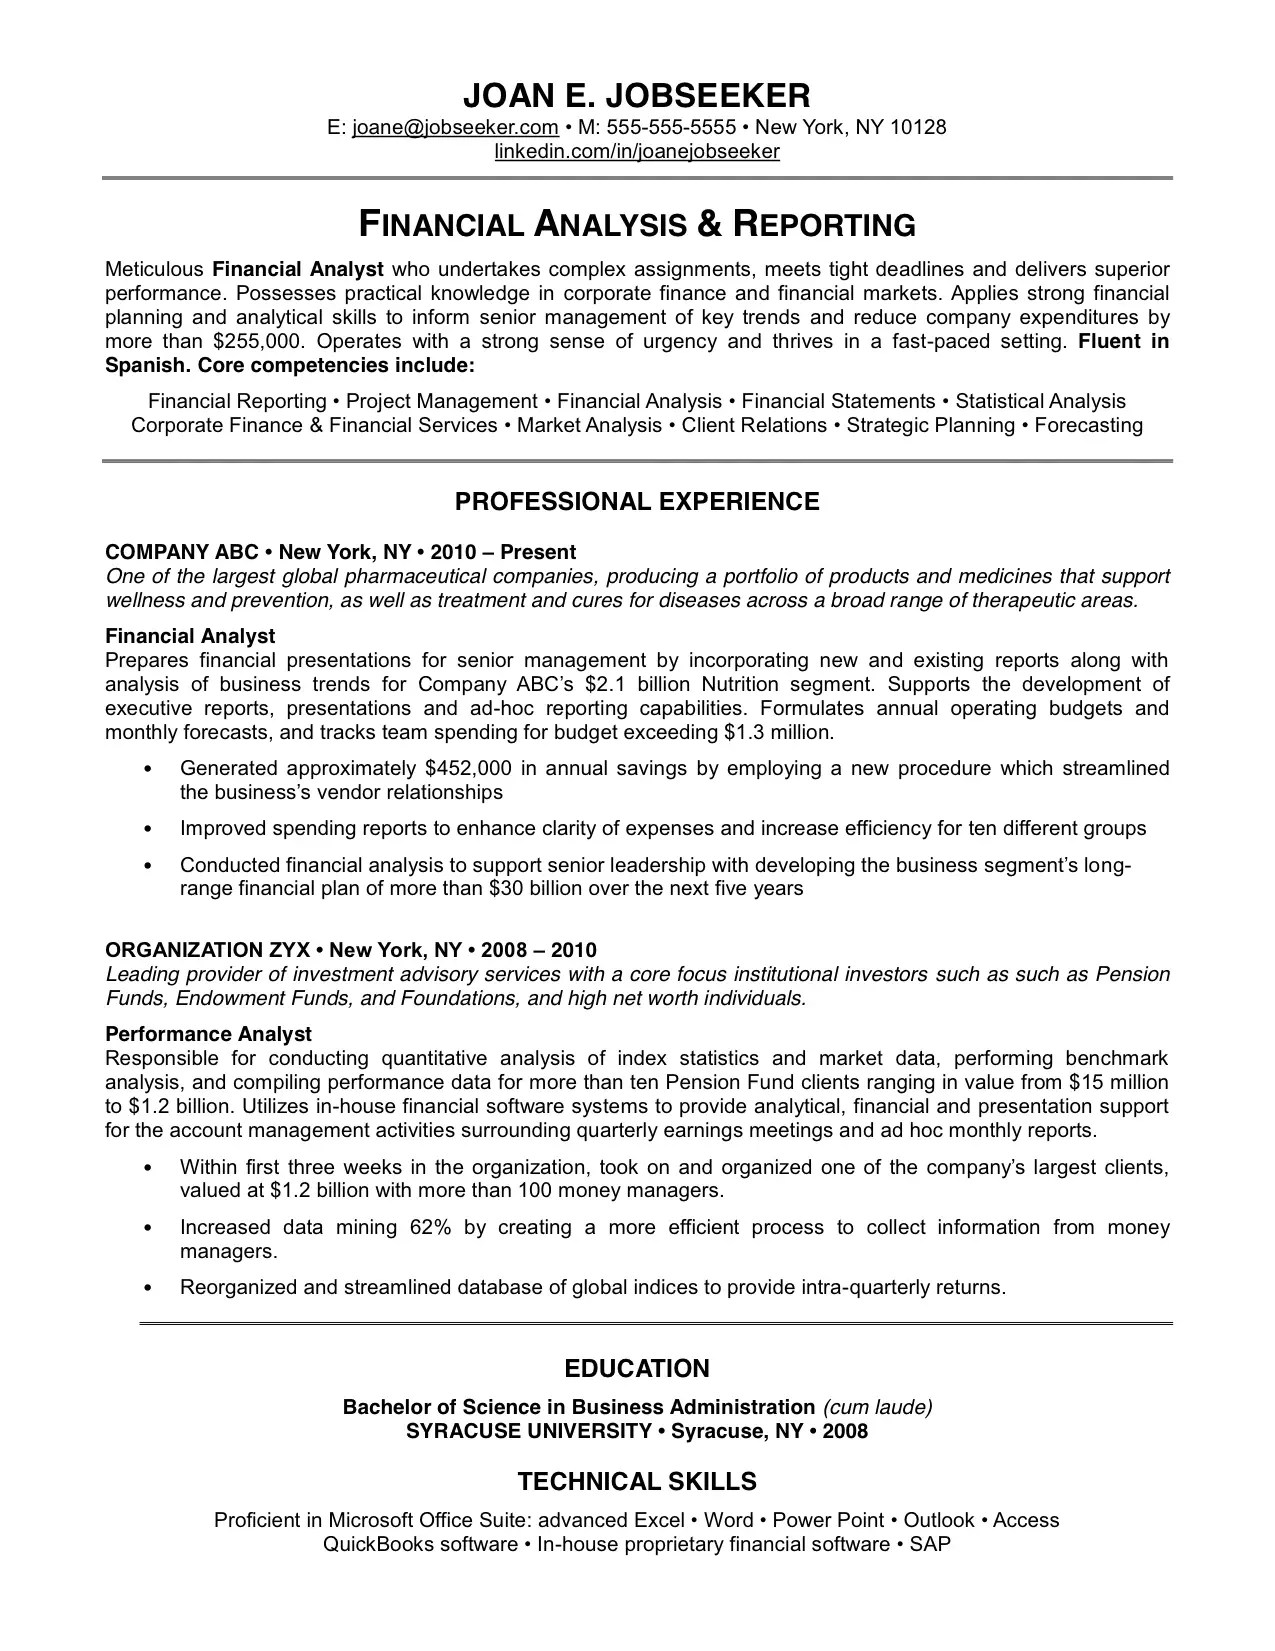 Dissertation Writing Help - Facebook good size font for resume ...